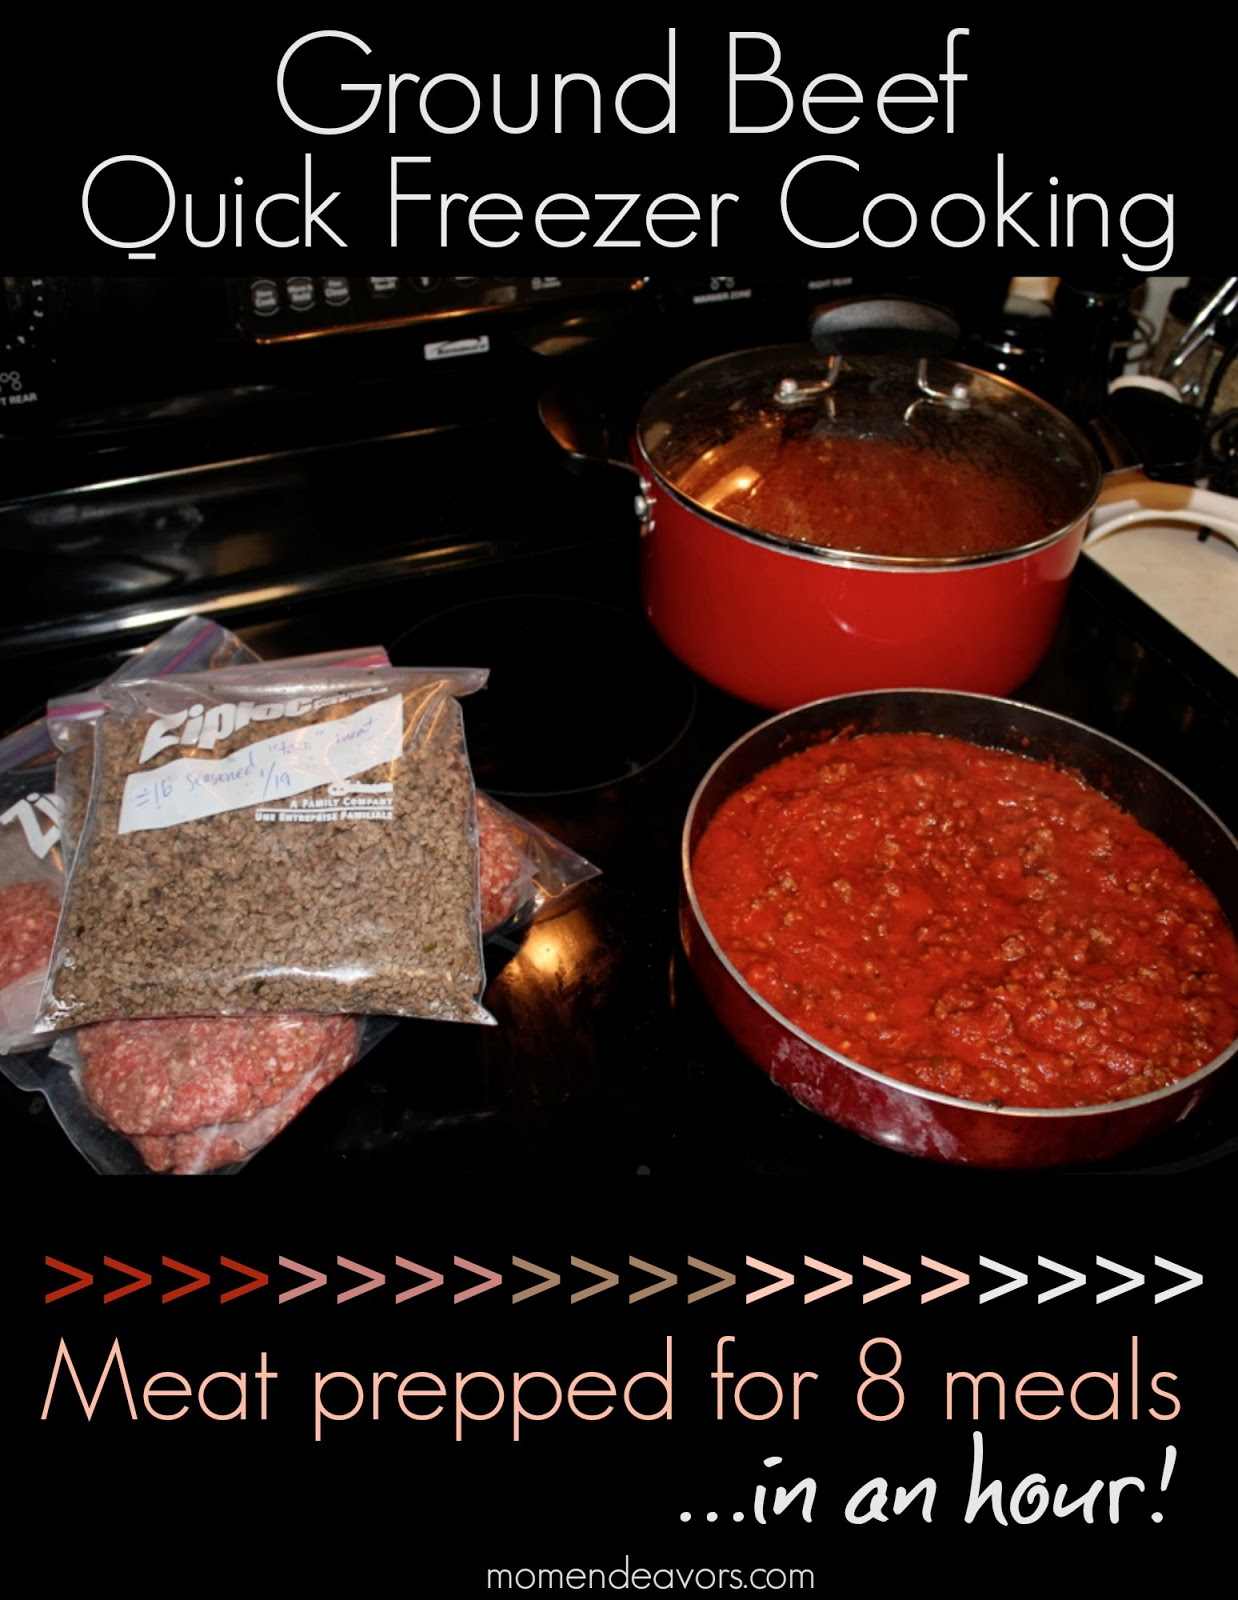 Ground Beef Quick Freezer Cooking via Mom Endeavors